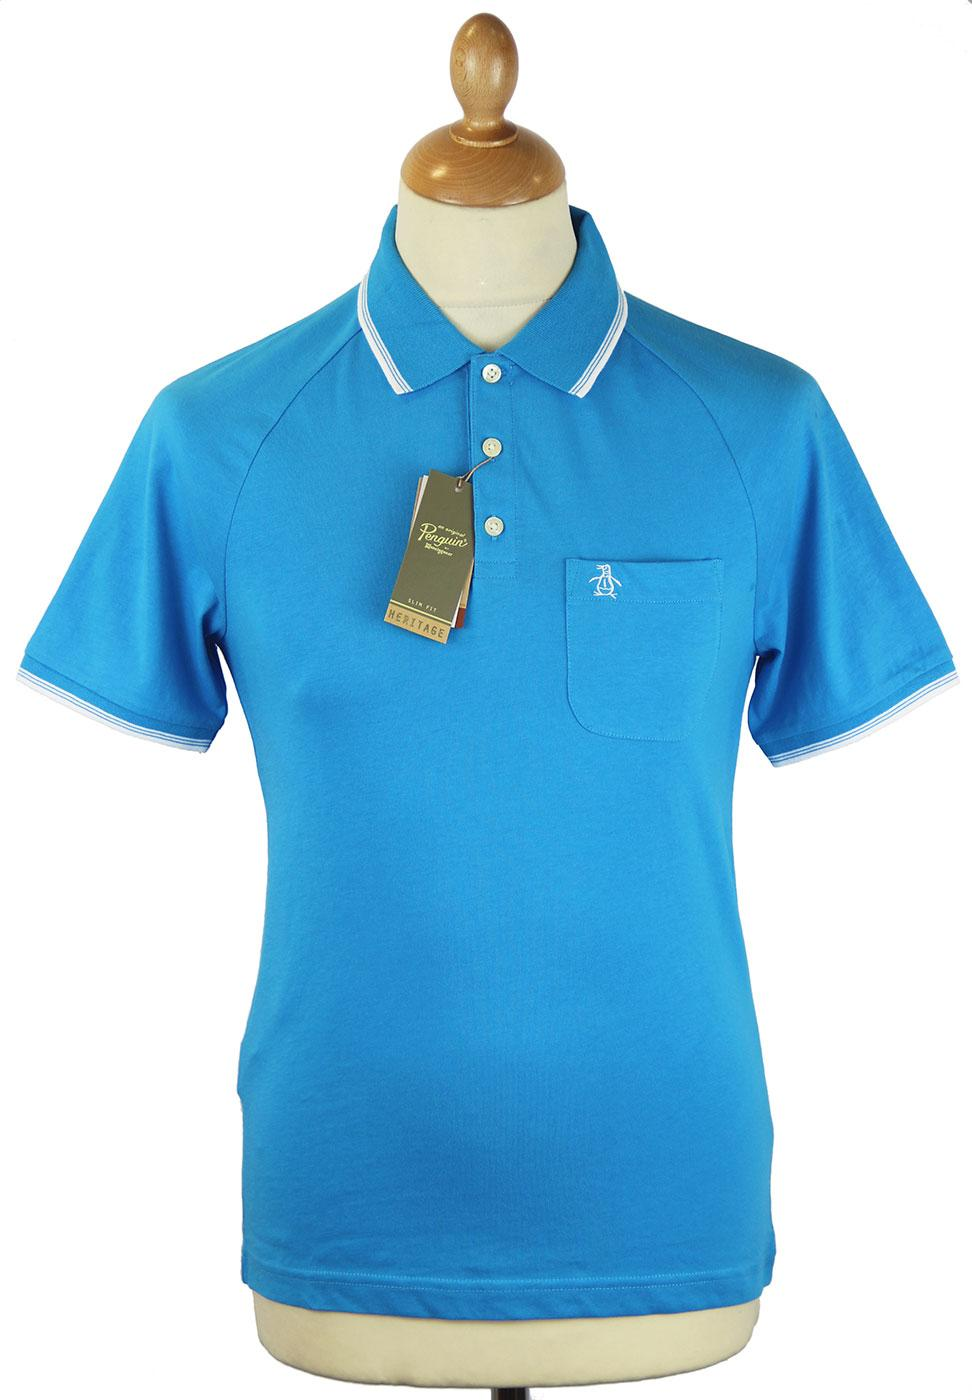 55 Polo ORIGINAL PENGUIN Retro Mod Tipped Polo VB